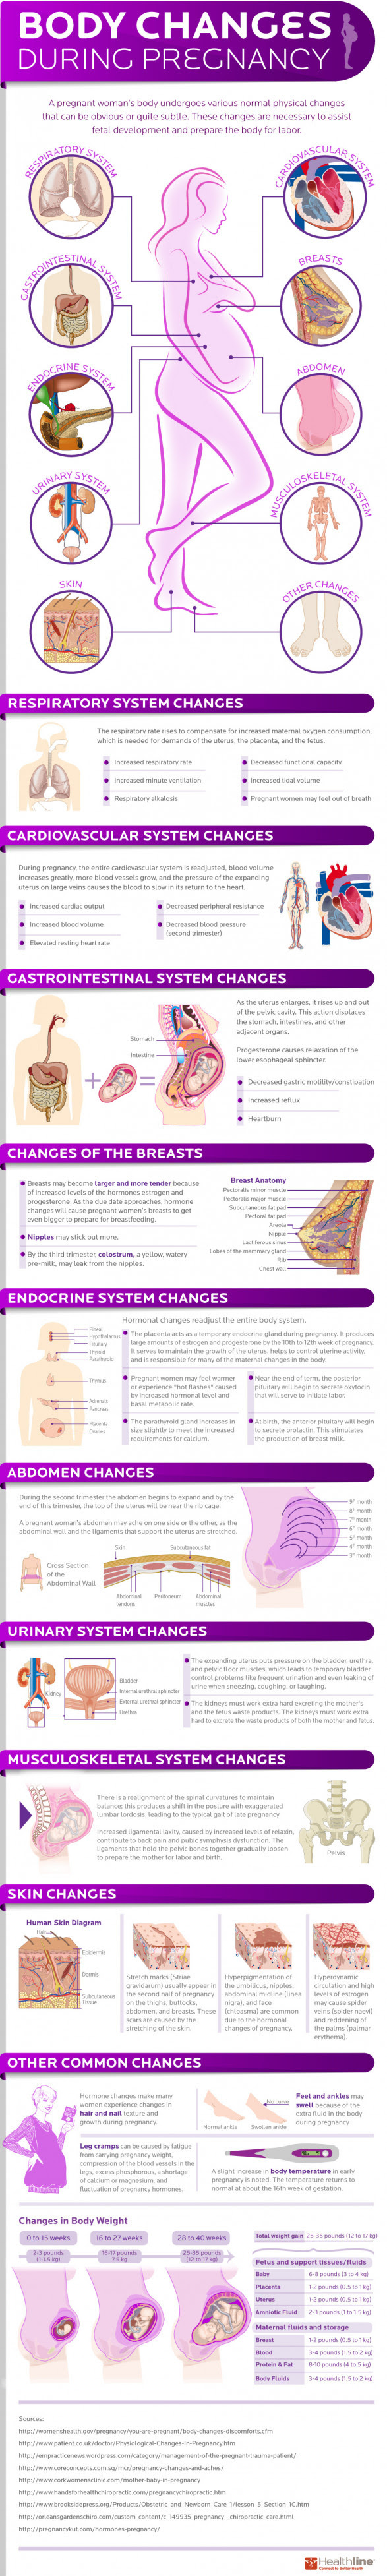 Body Changes During Pregnancy